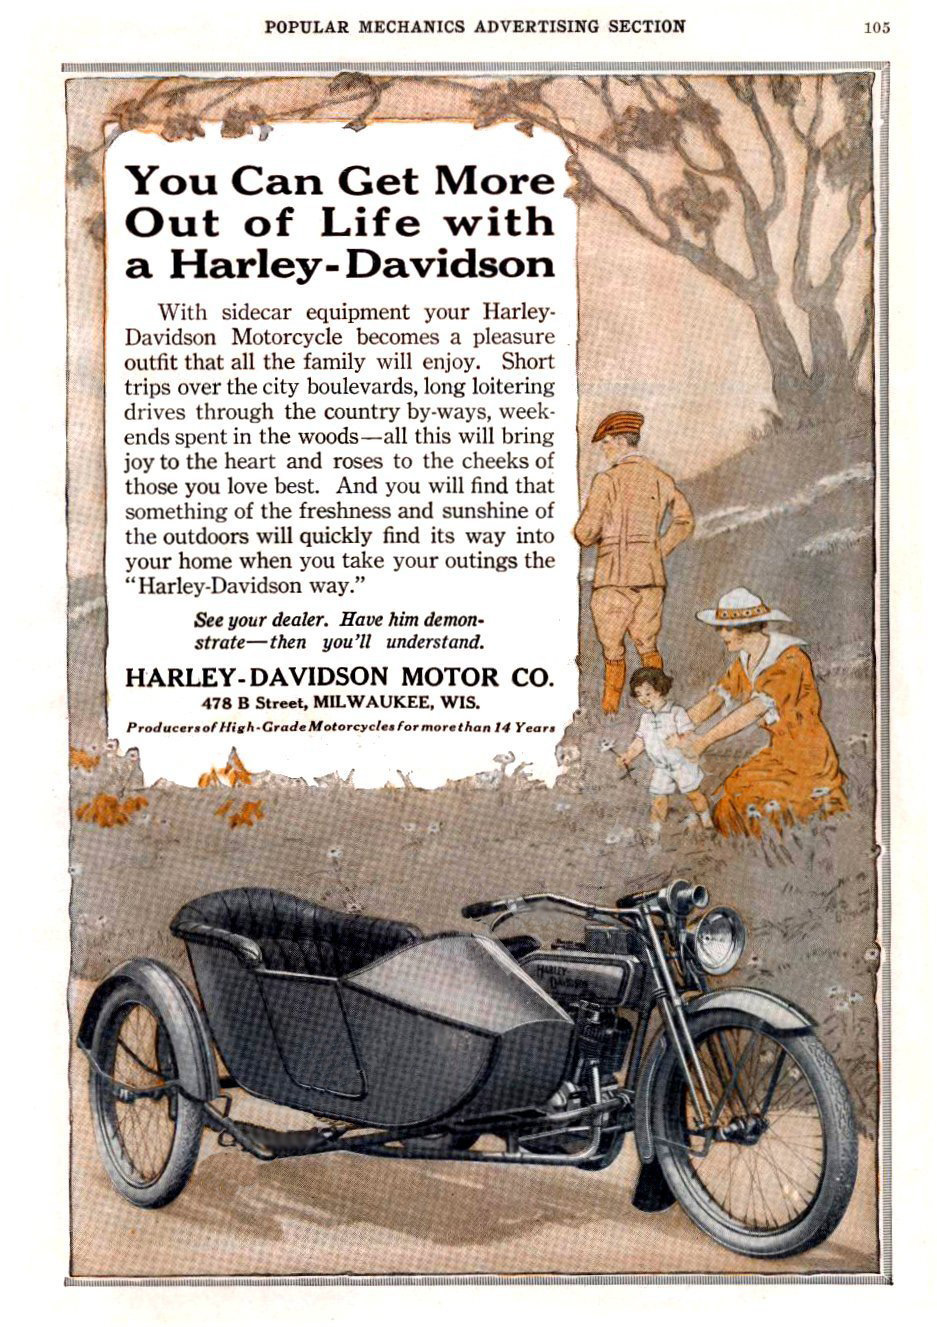 1916 - You can get more out of life with a Harley-Davidson